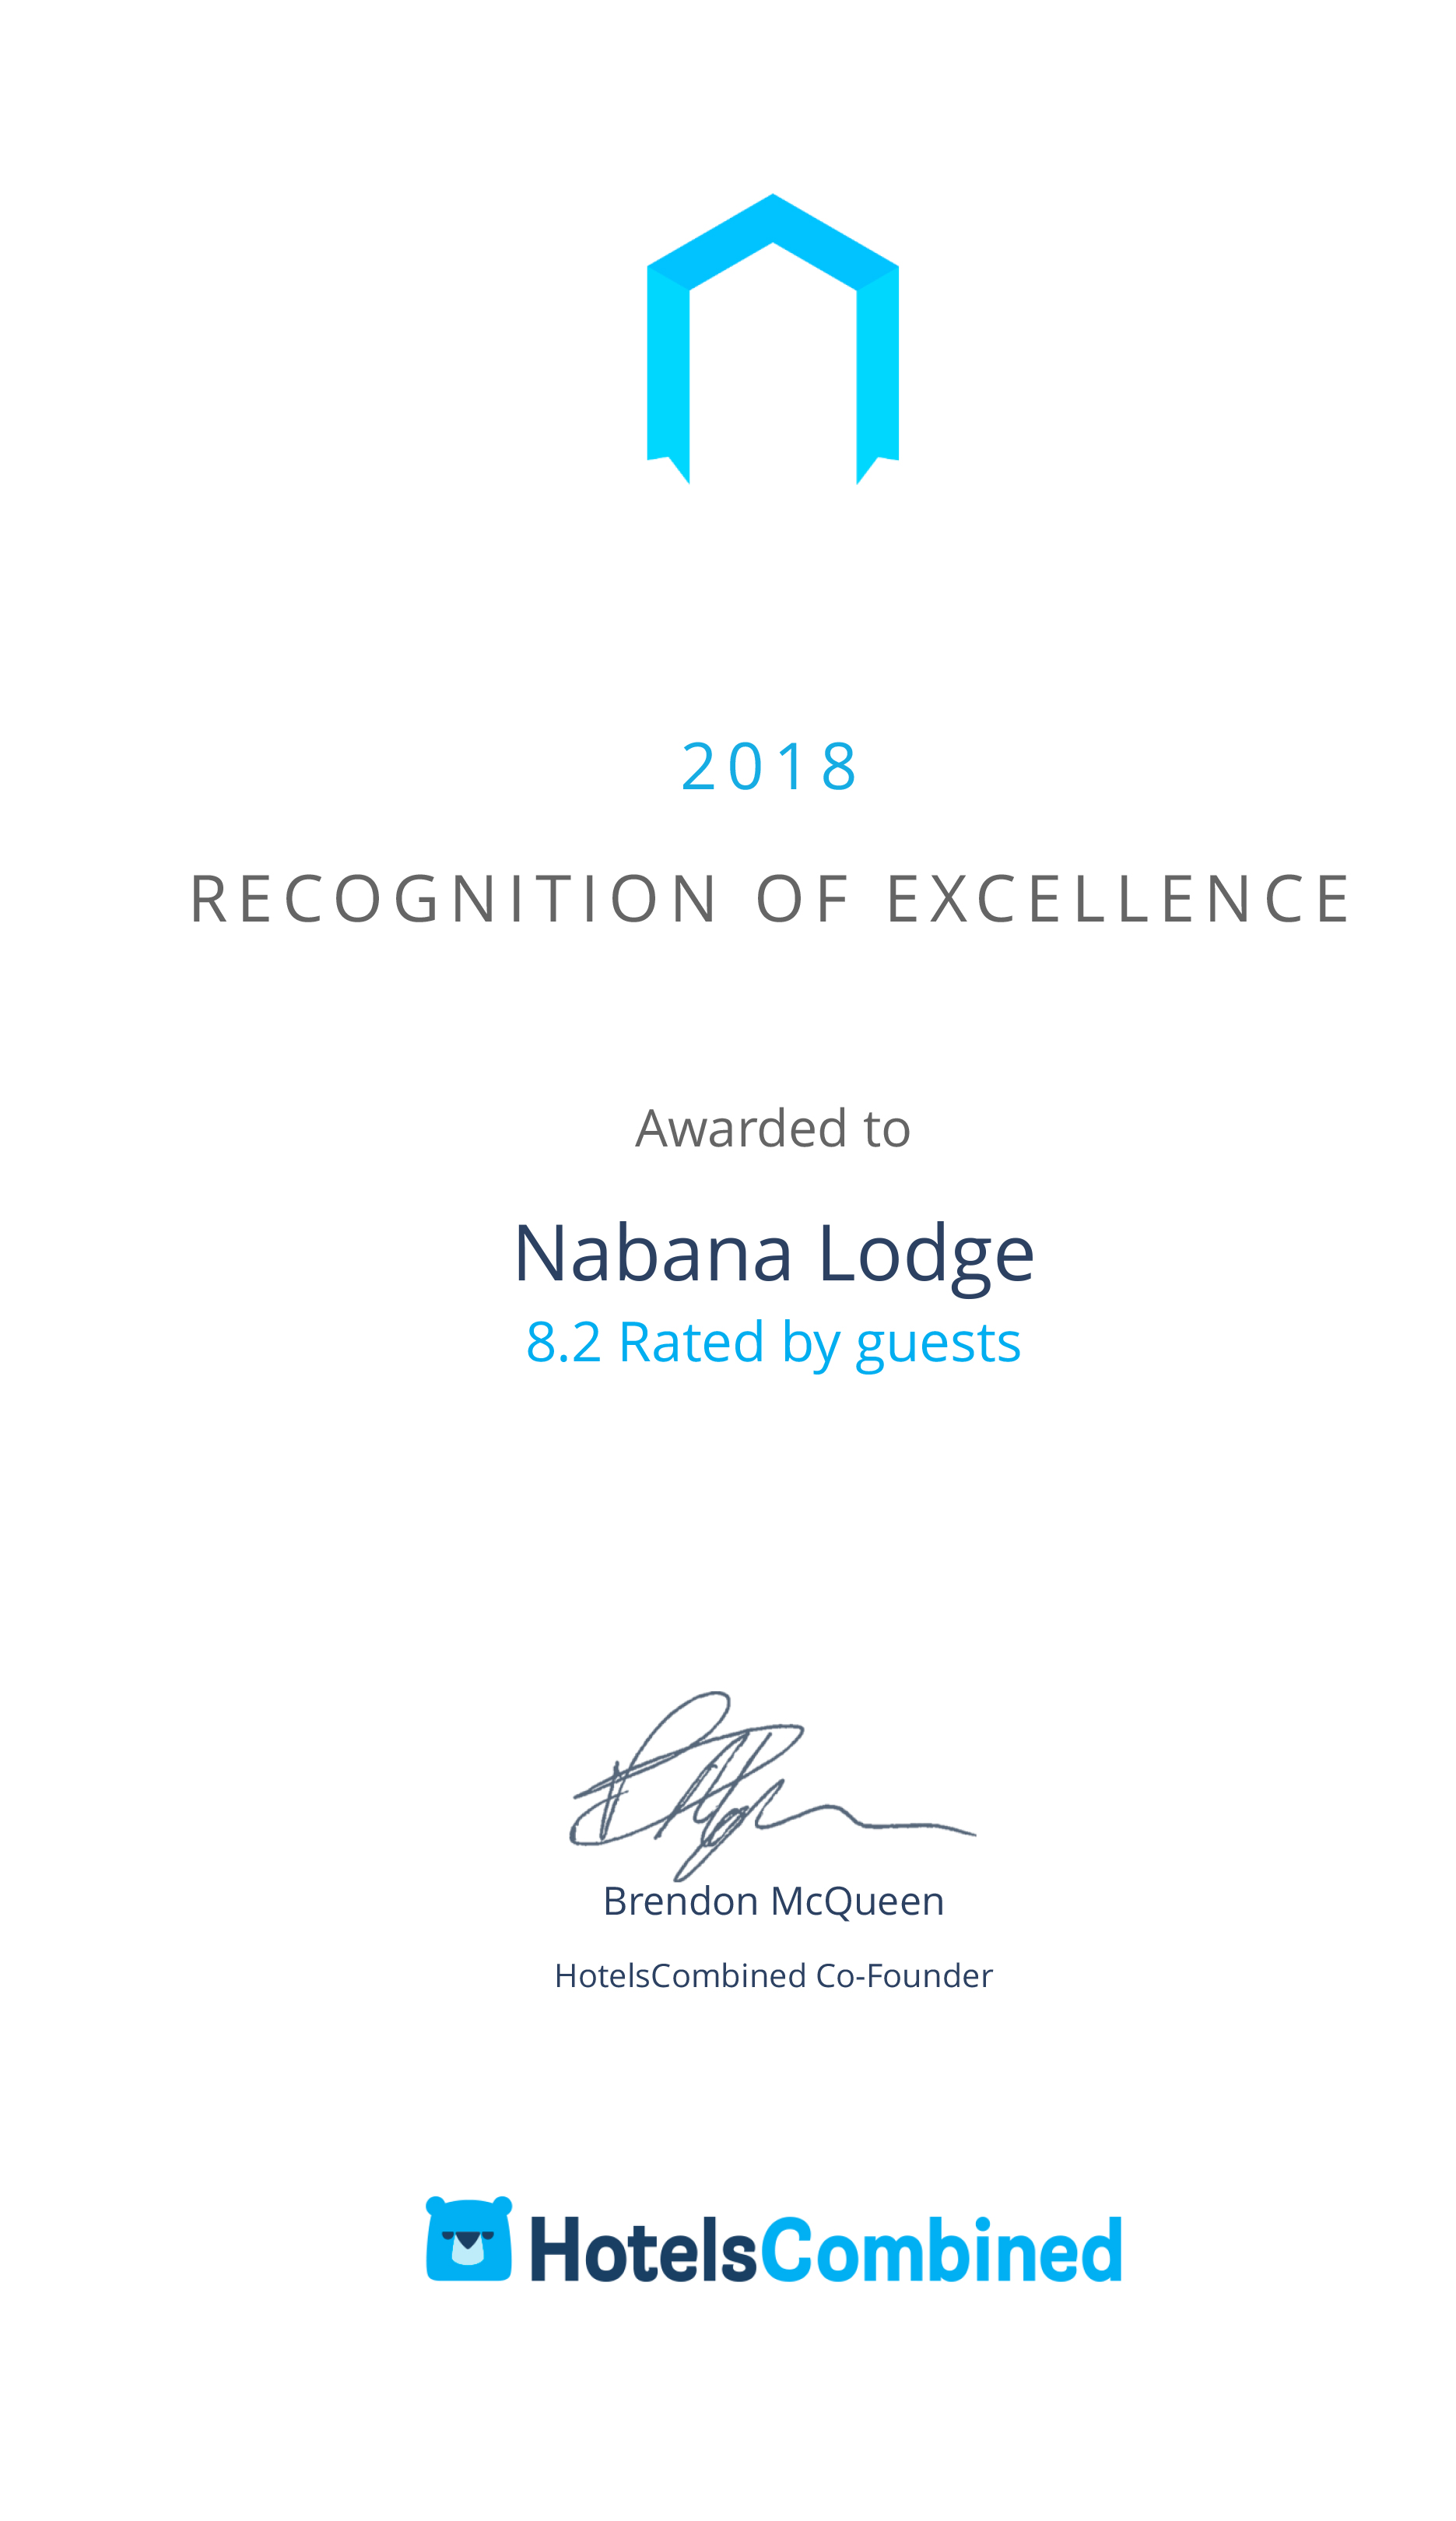 Recognition of Excellence awarded to Nabana Lodge - SA